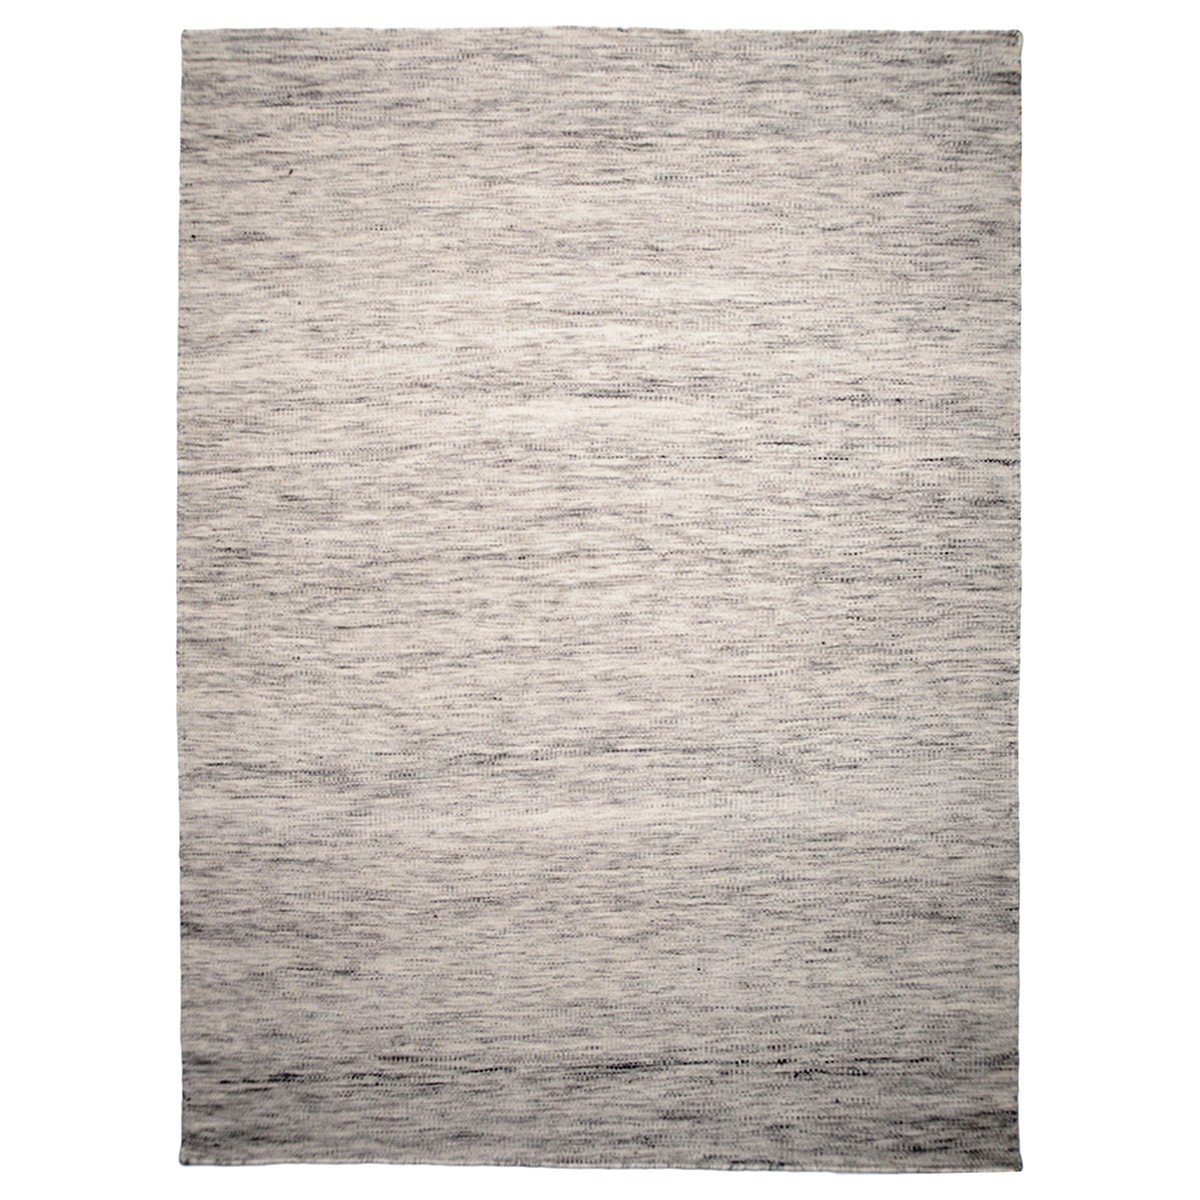 Capri Handwoven Wool Rug, 220x160cm, Light Grey